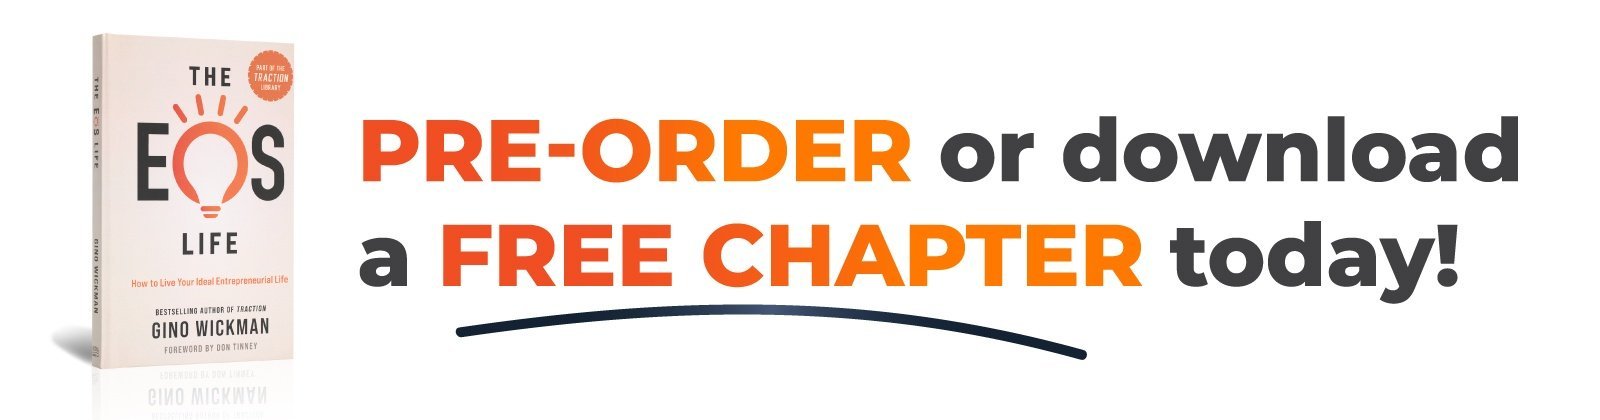 Pre-Order or Download a free chapter